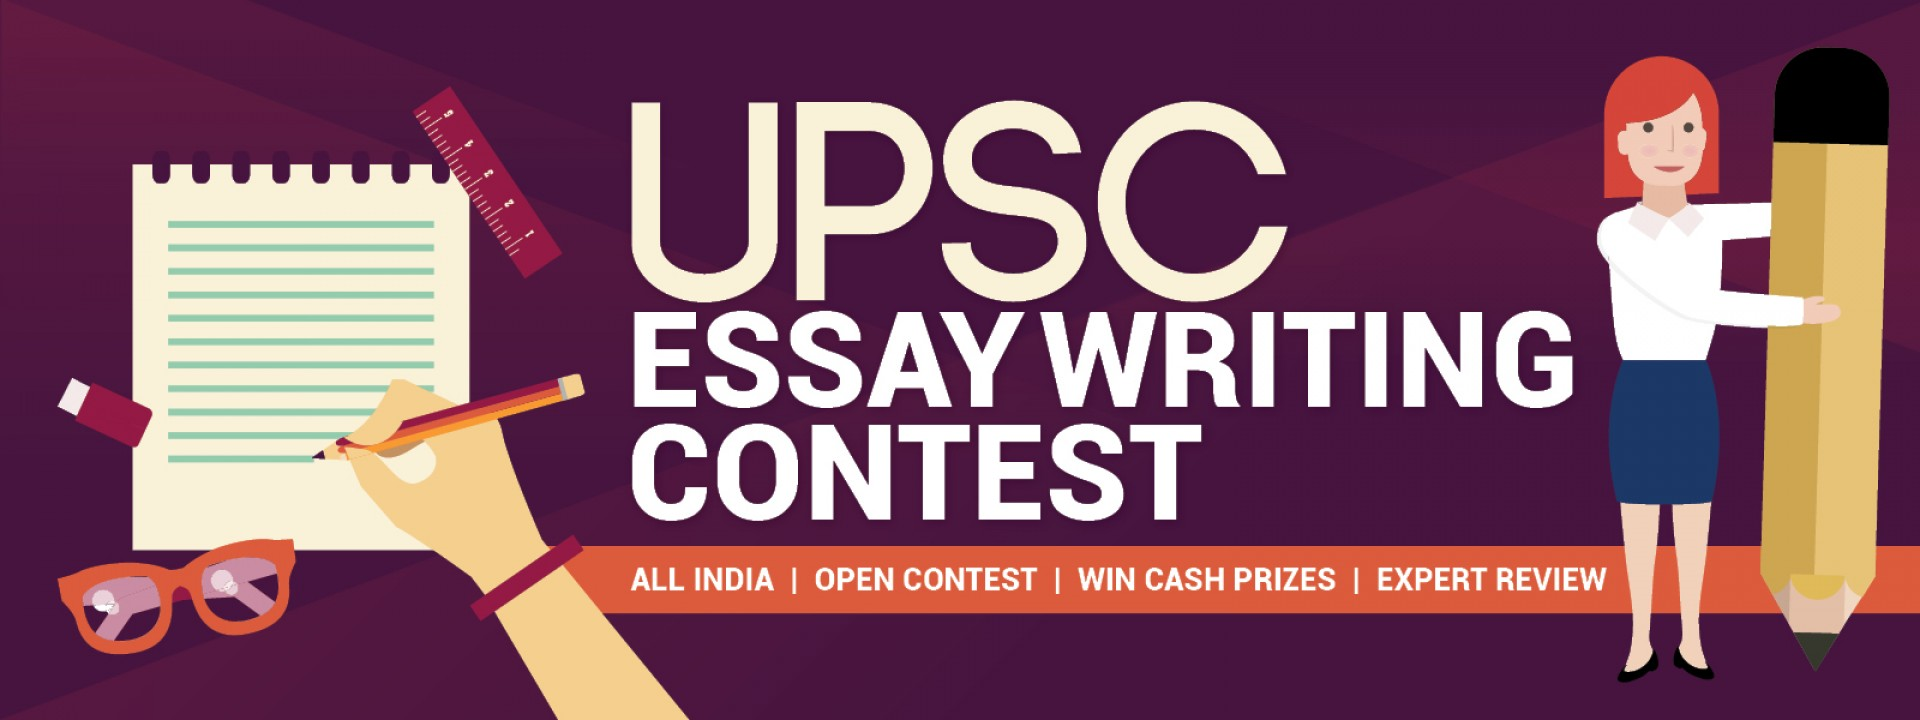 015 Essay Example Writing Contest Incredible Competition For College Students By Essayhub Sample Mechanics 1920